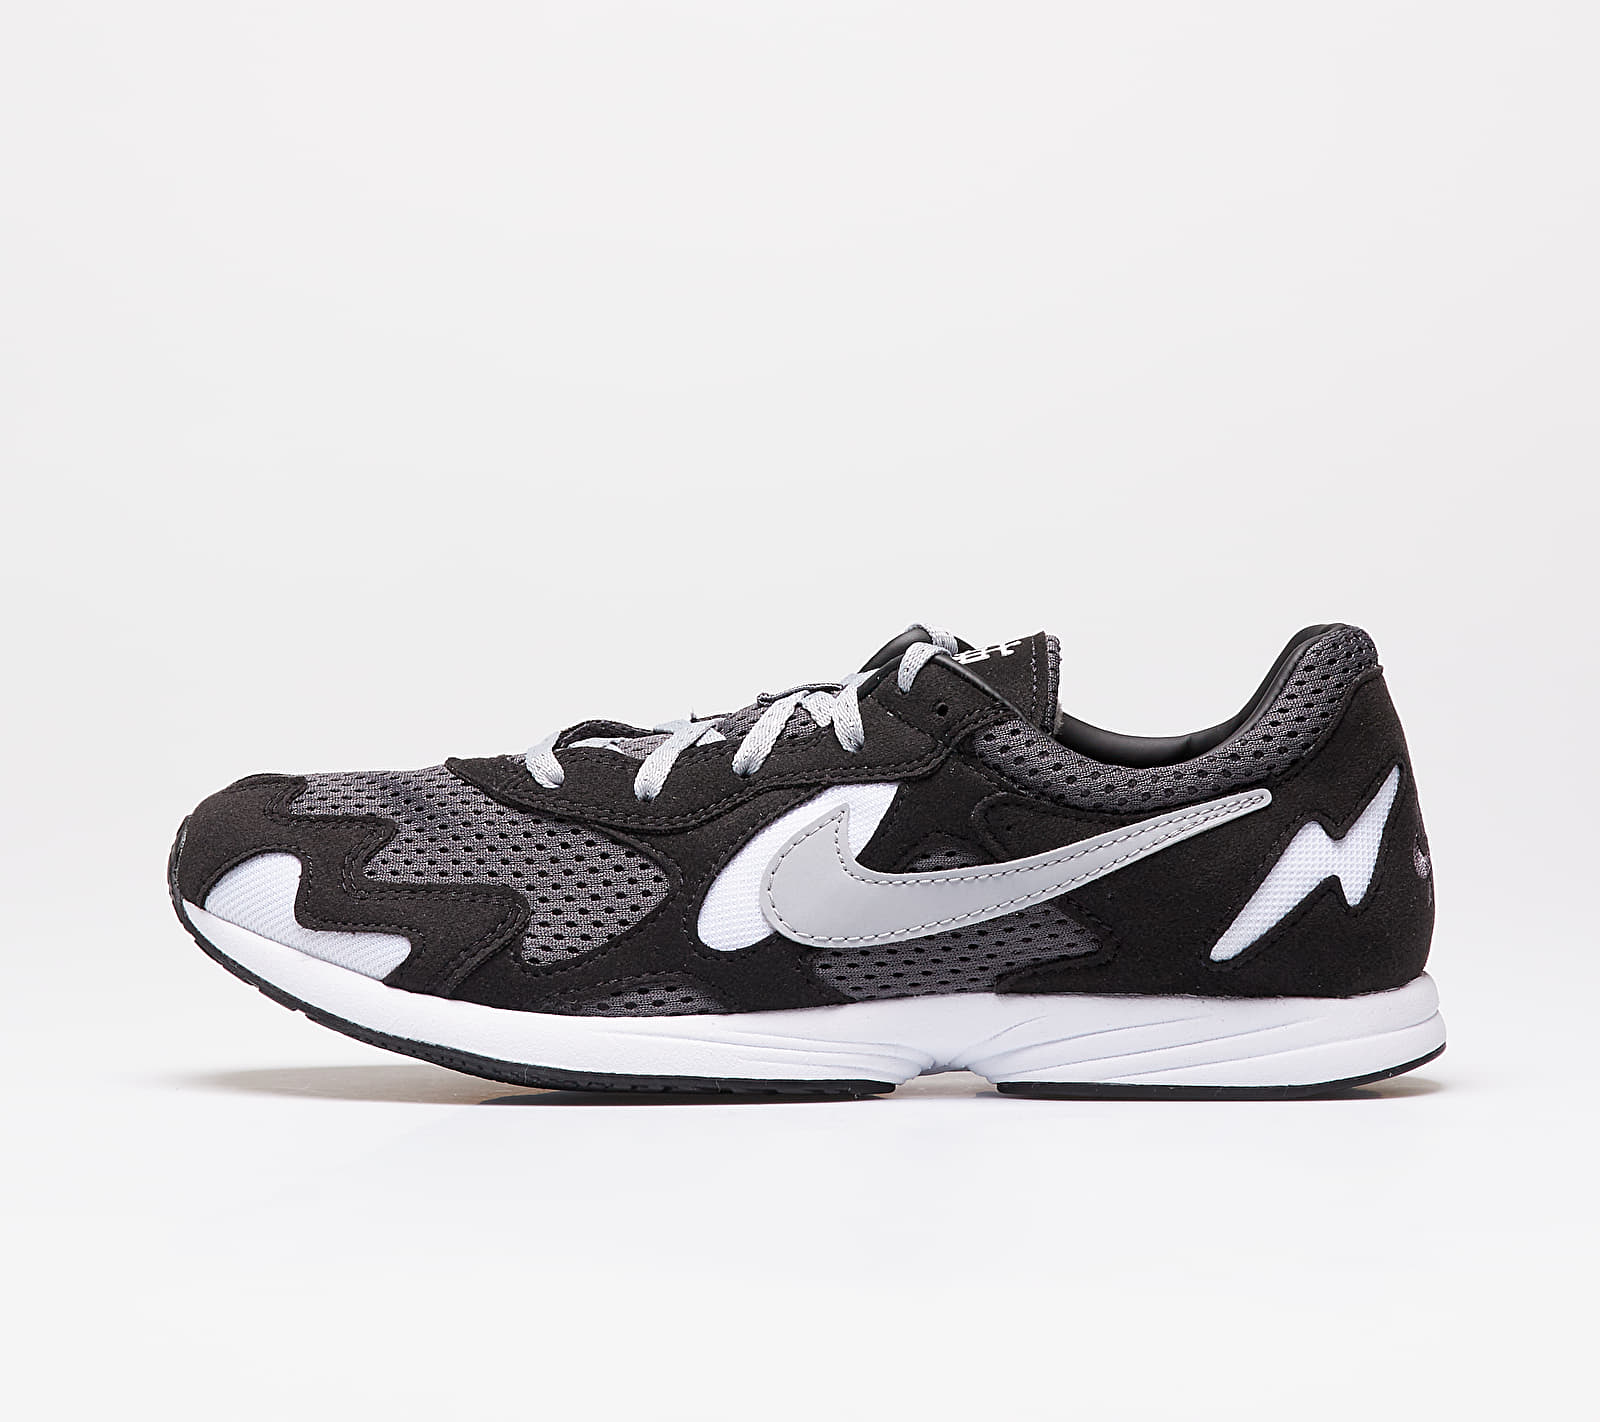 Nike Air Streak Lite Black/ Wolf Grey-Dark Grey-White EUR 45